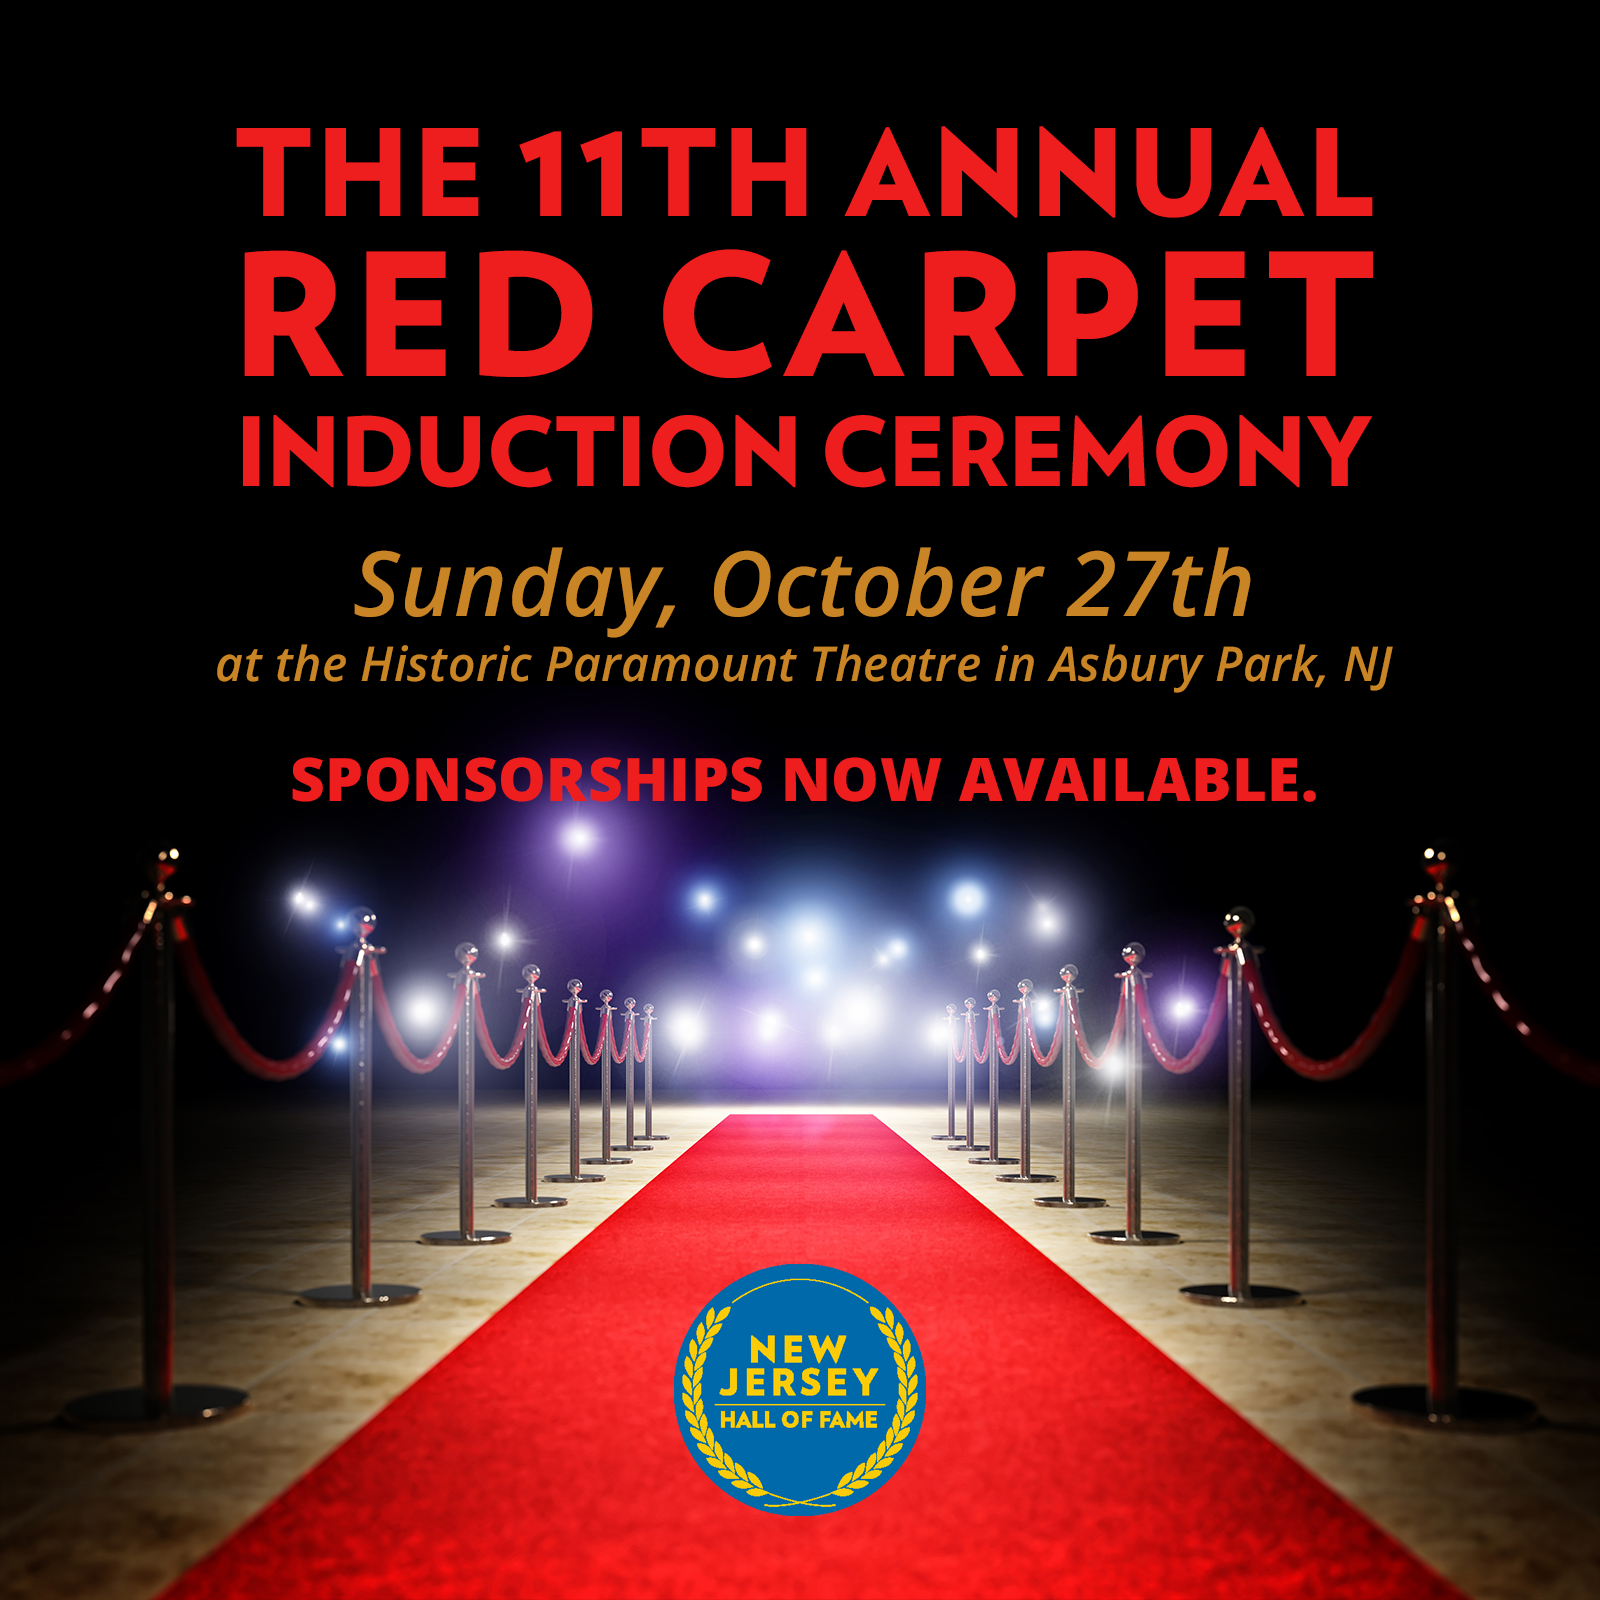 Gala Induction Sponsorships now available